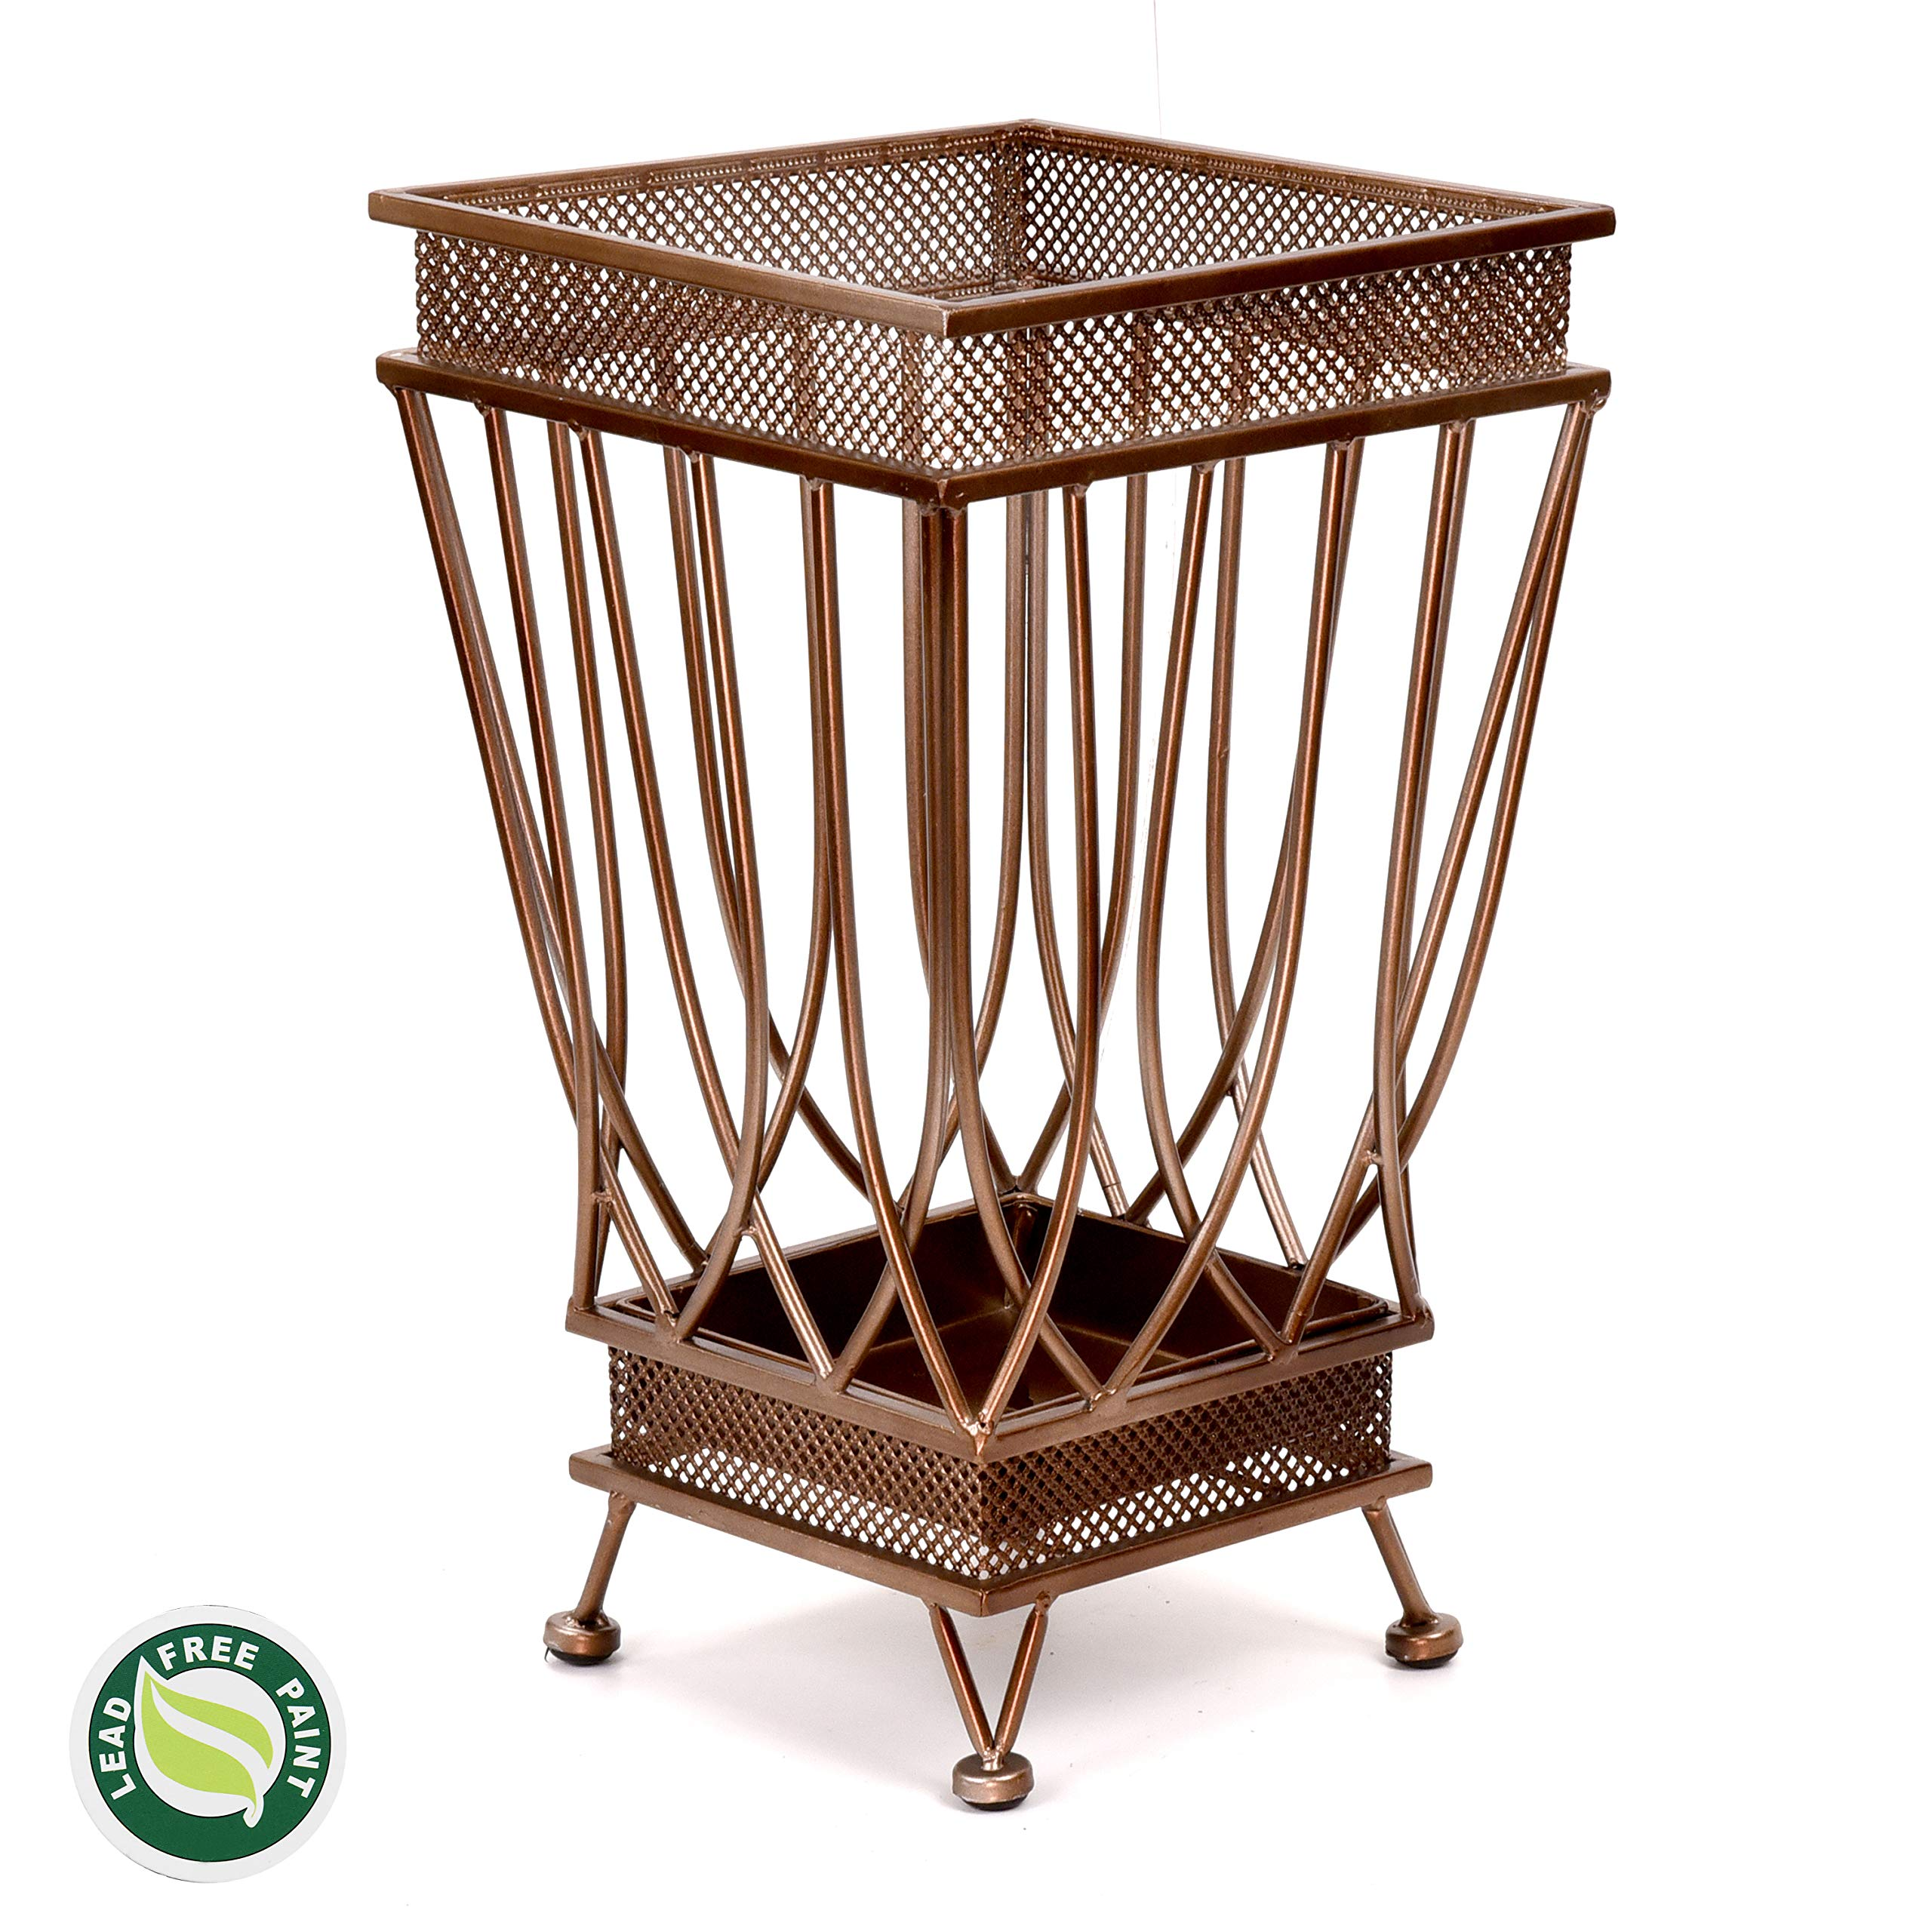 Dualplex Super Quality Umbrella Stand, Umbrella Holder, Antique Look Metal, Entry Hallway Décor, Square Style, w/Removable Drip Tray. Home, Office Decoration Rack Holds Umbrellas Canes Walking Sticks